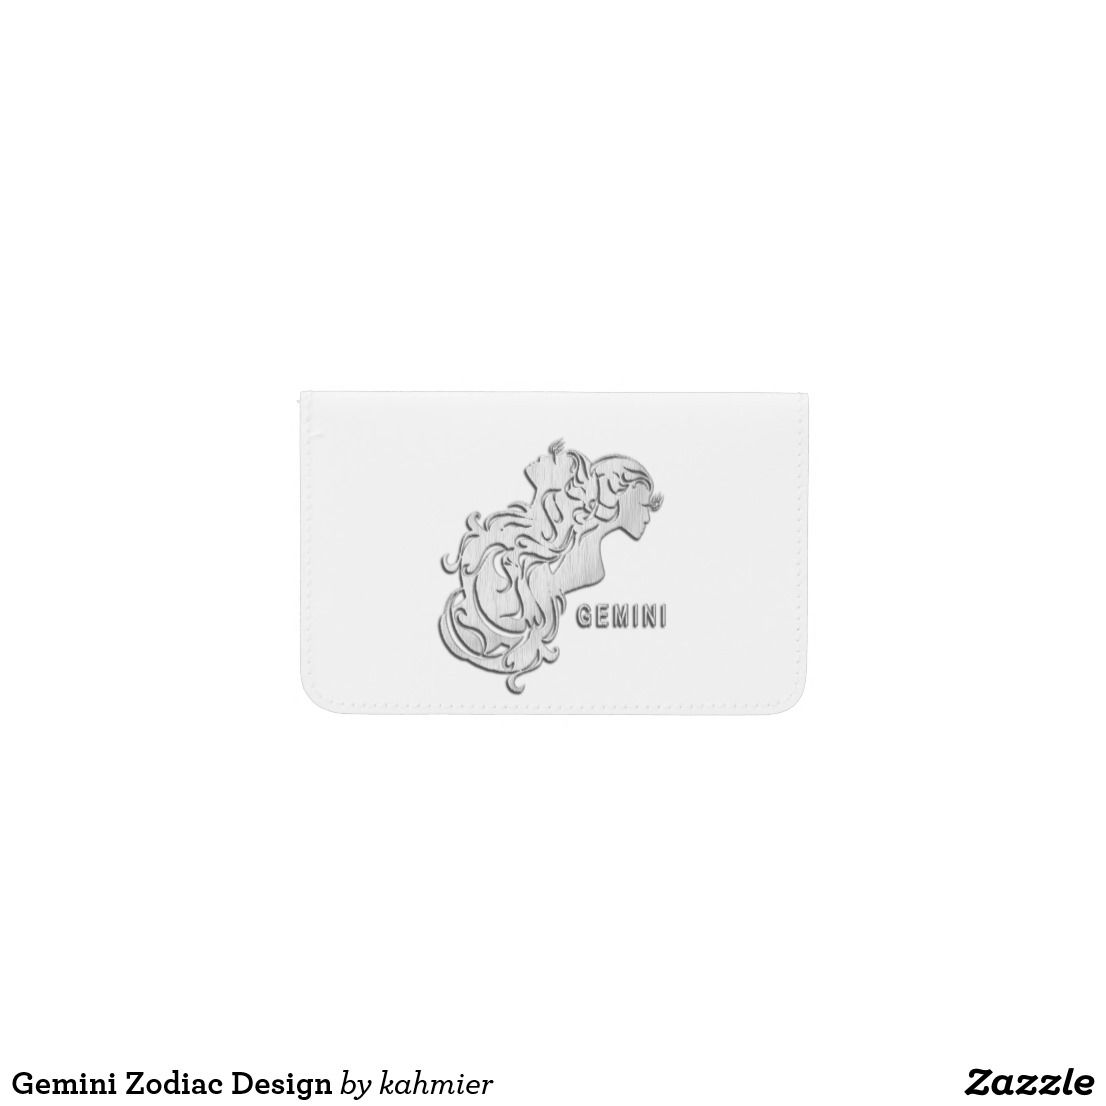 Gemini Zodiac Design Business Card Holder | Gemini zodiac and ...